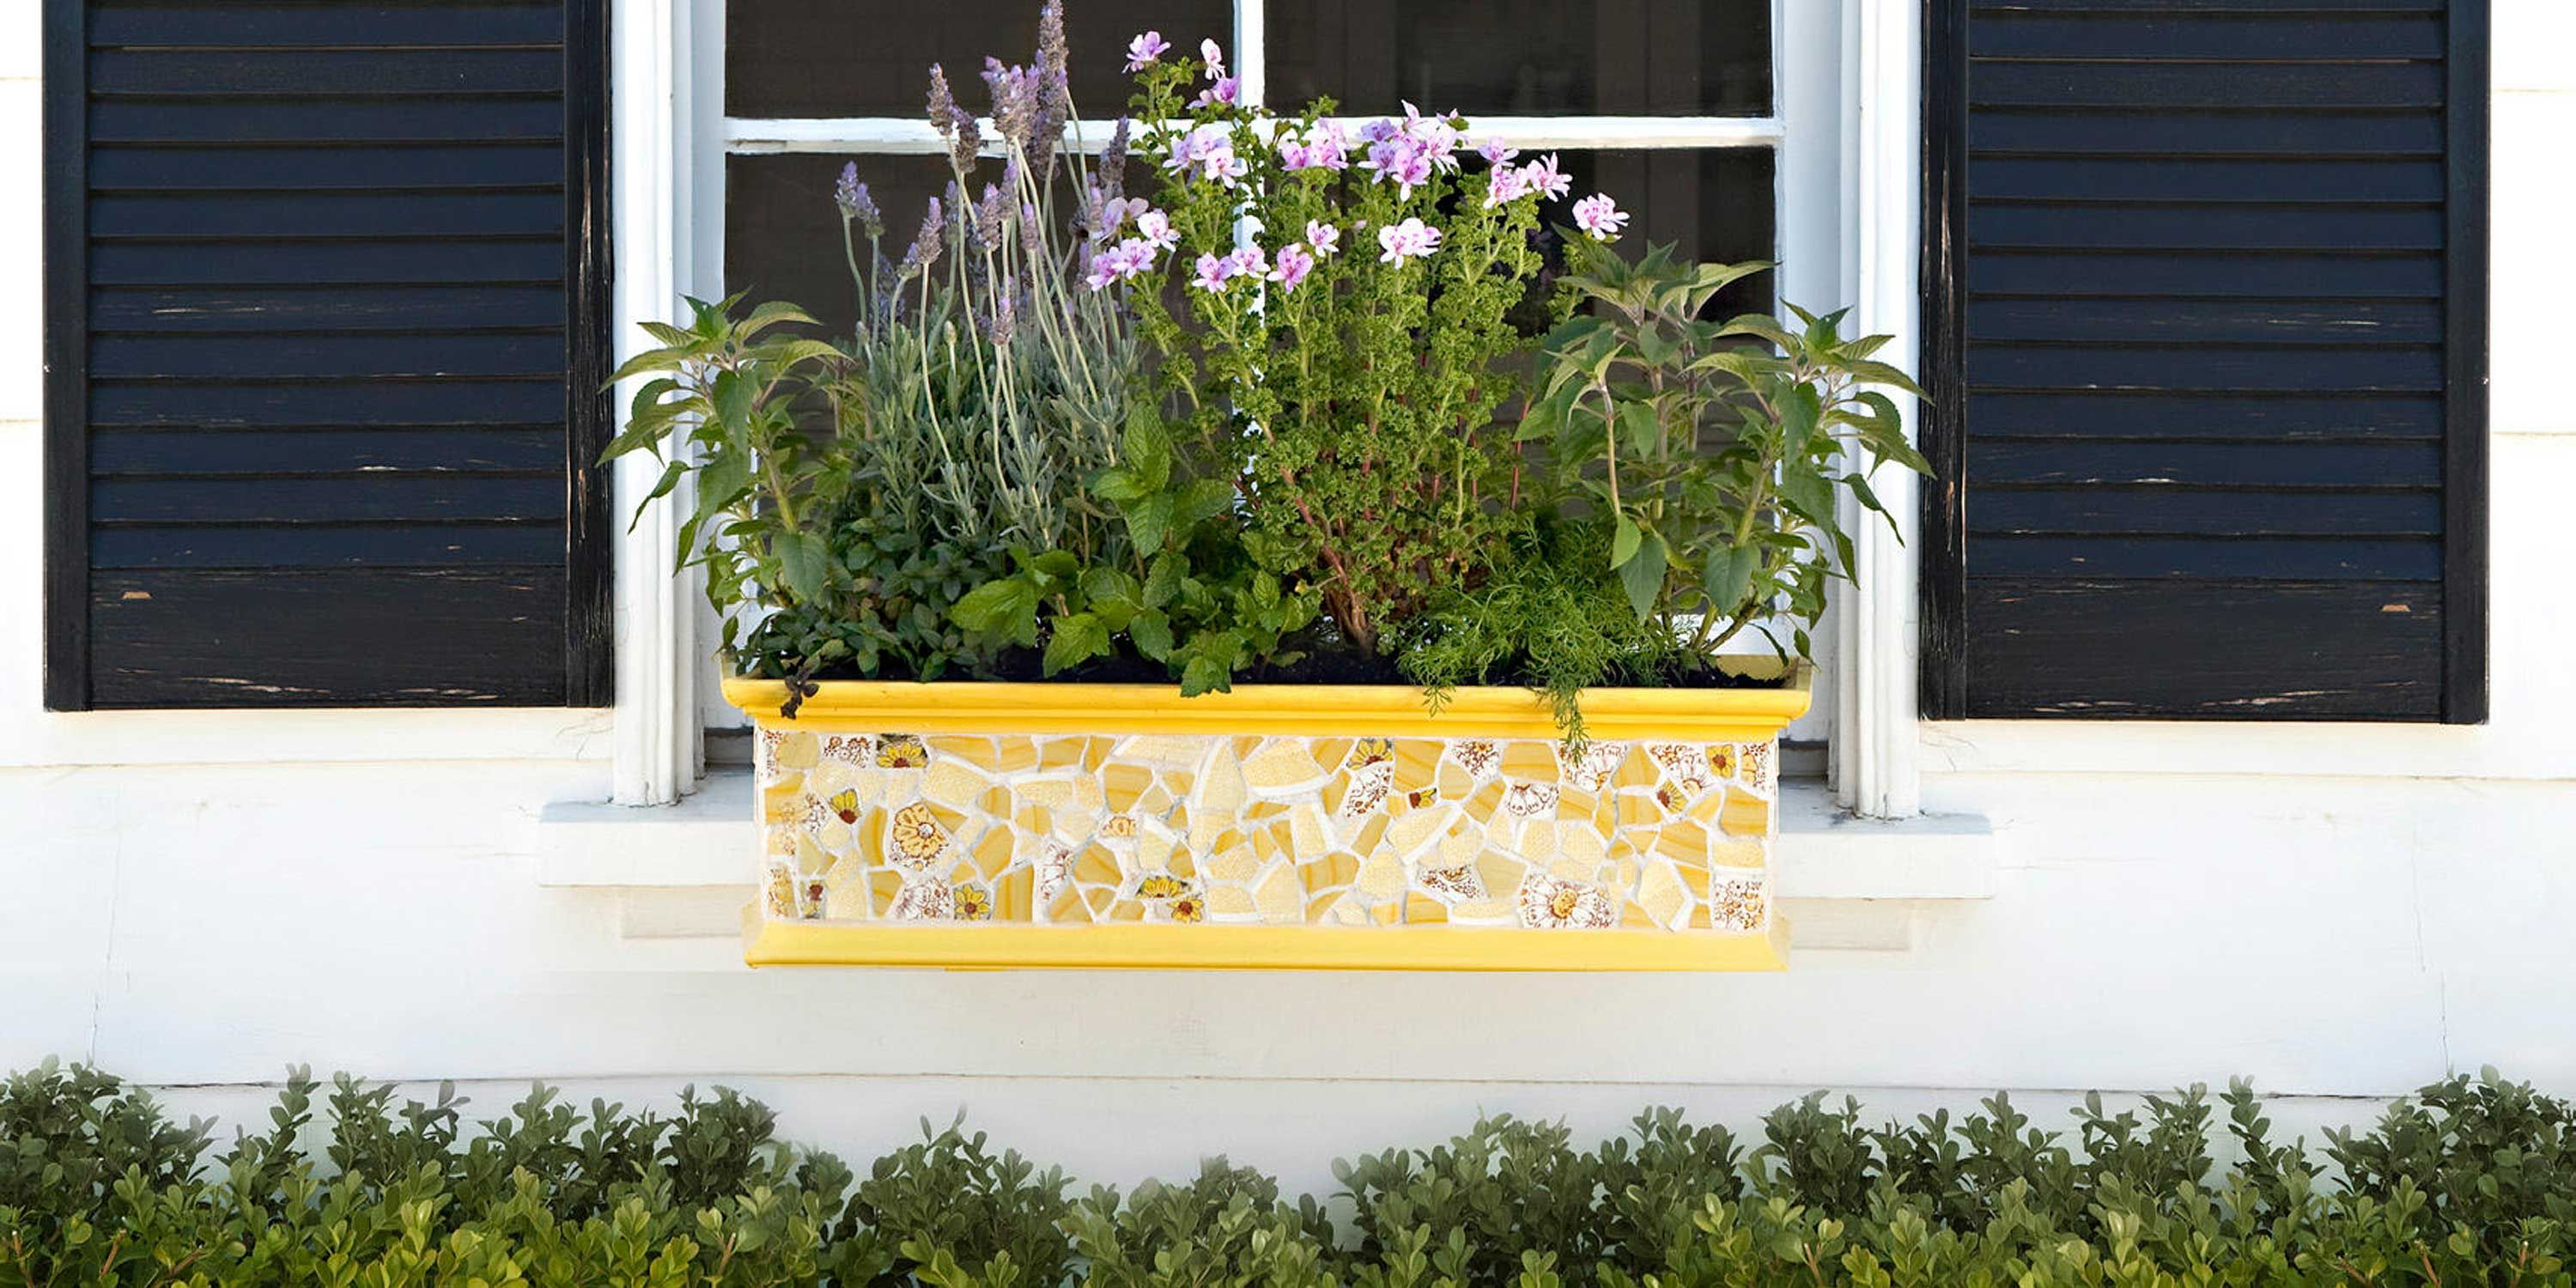 18 Fun Gardening Ideas For Your Window Bo Box Flowers Tips And